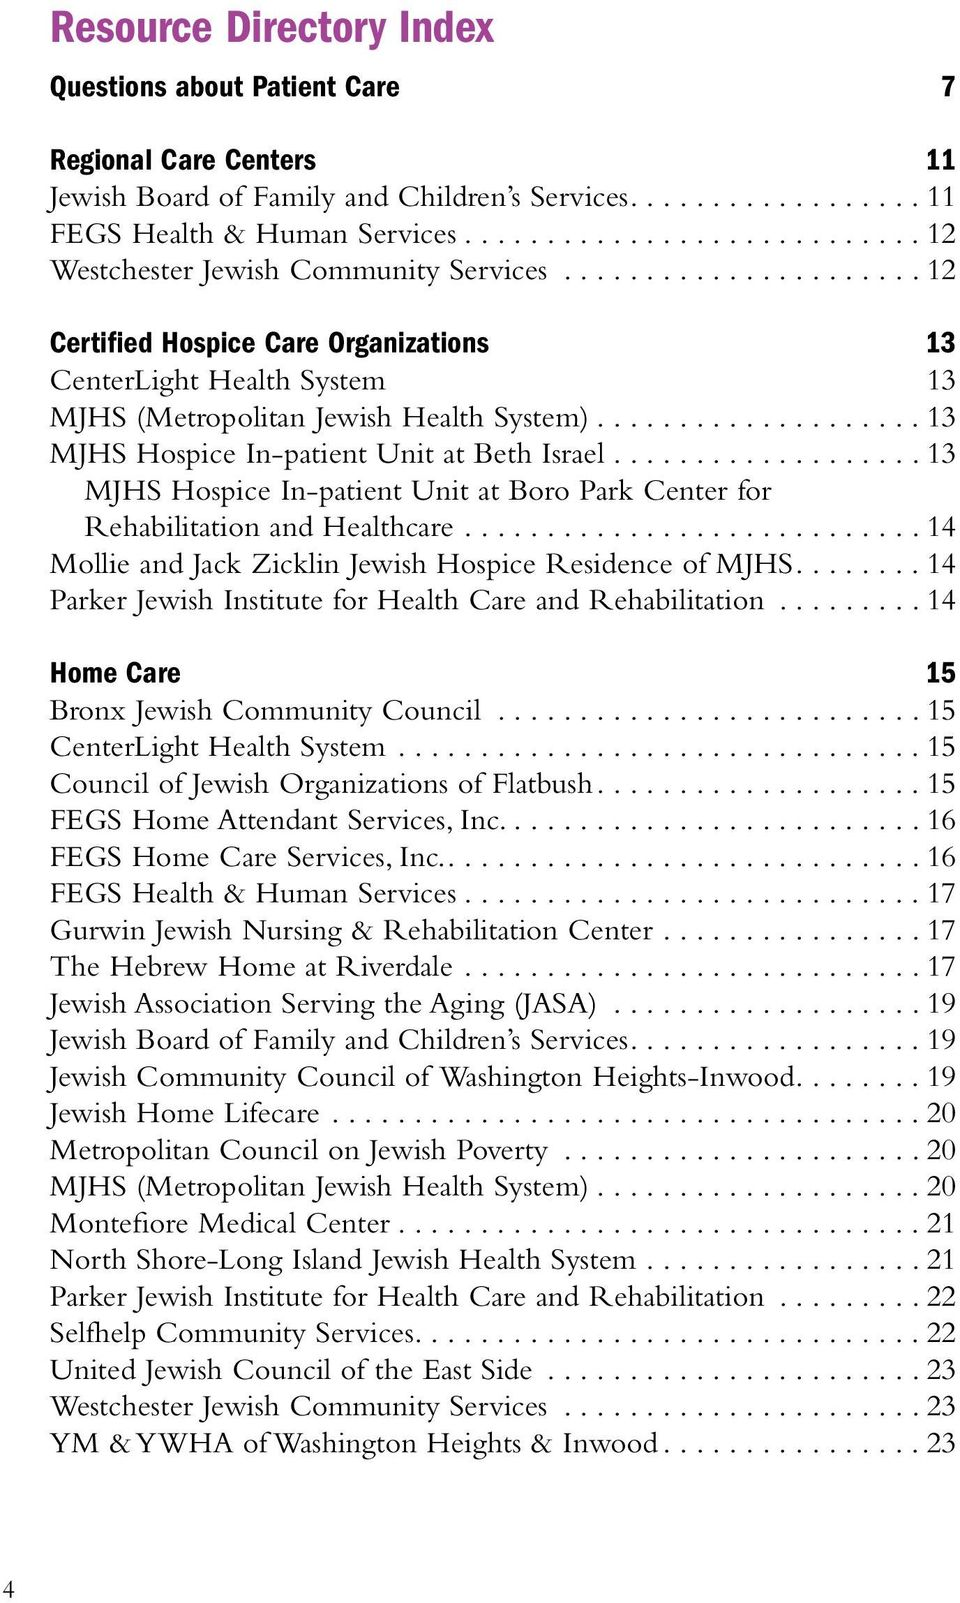 Jewish Healing and Hospice Alliance. Resource Directory Help for ...